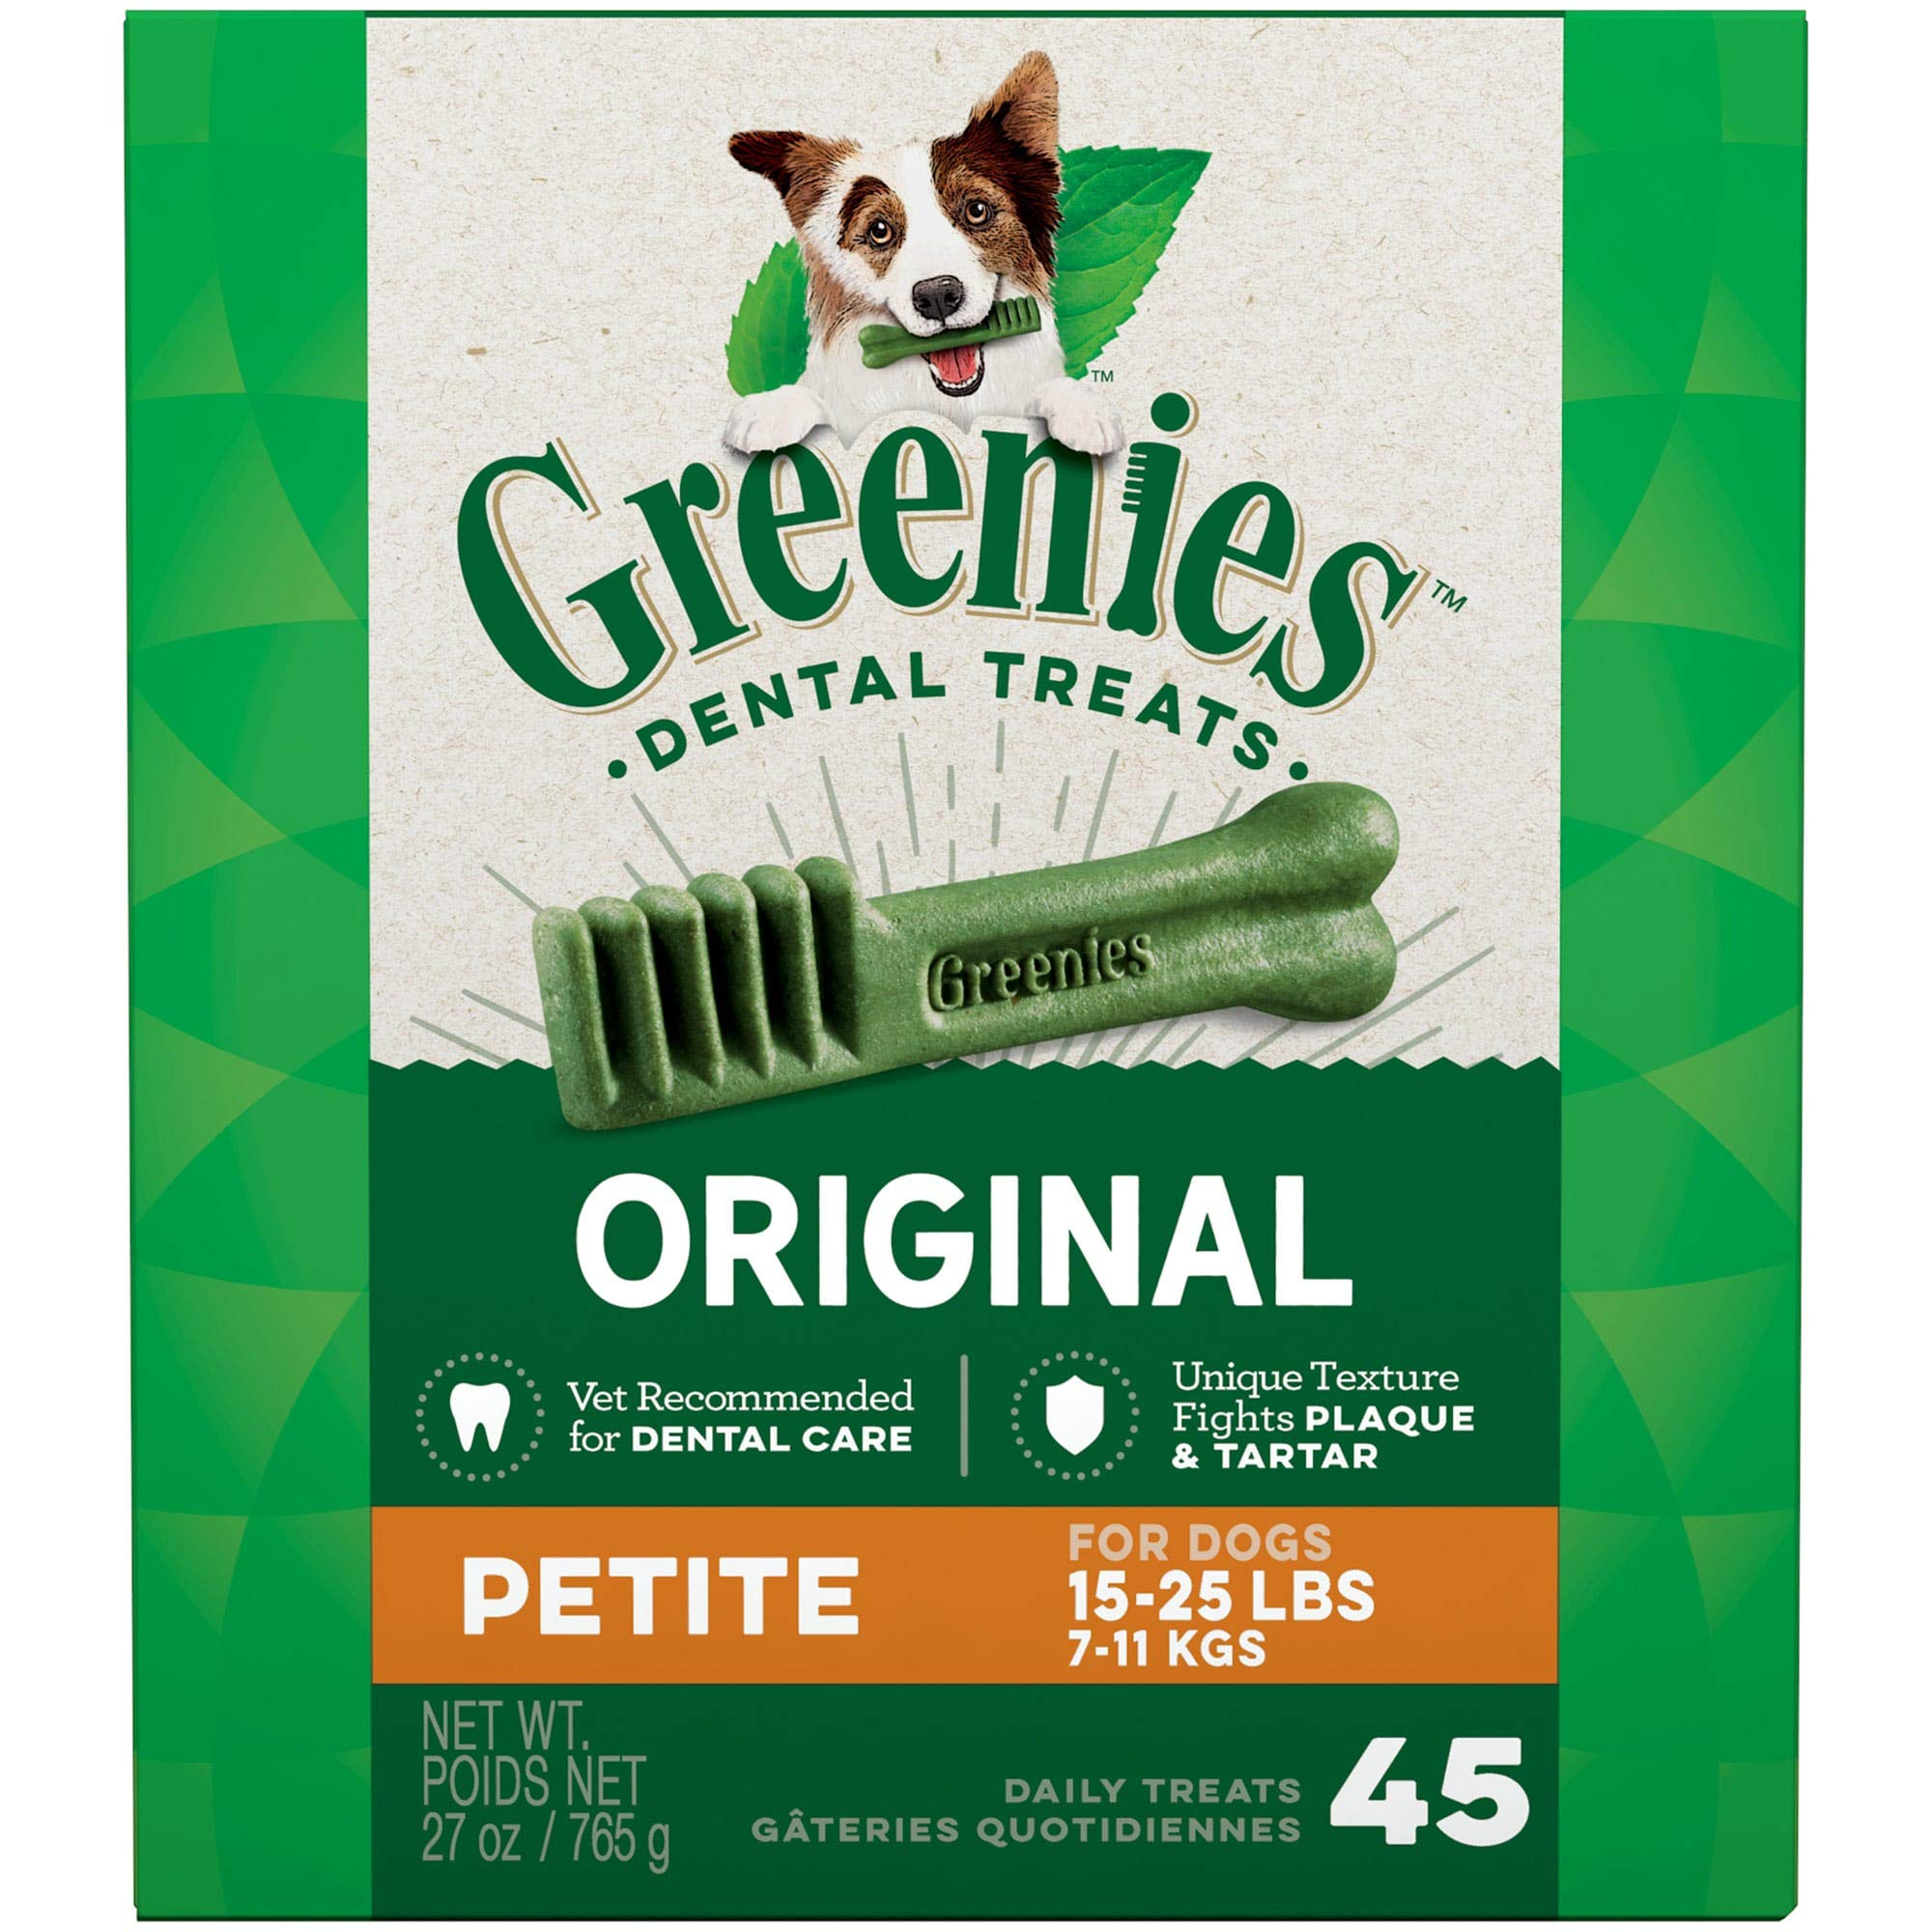 GREENIES Original Petite Natural Dog Dental Care Chews Oral Health Dog Treats